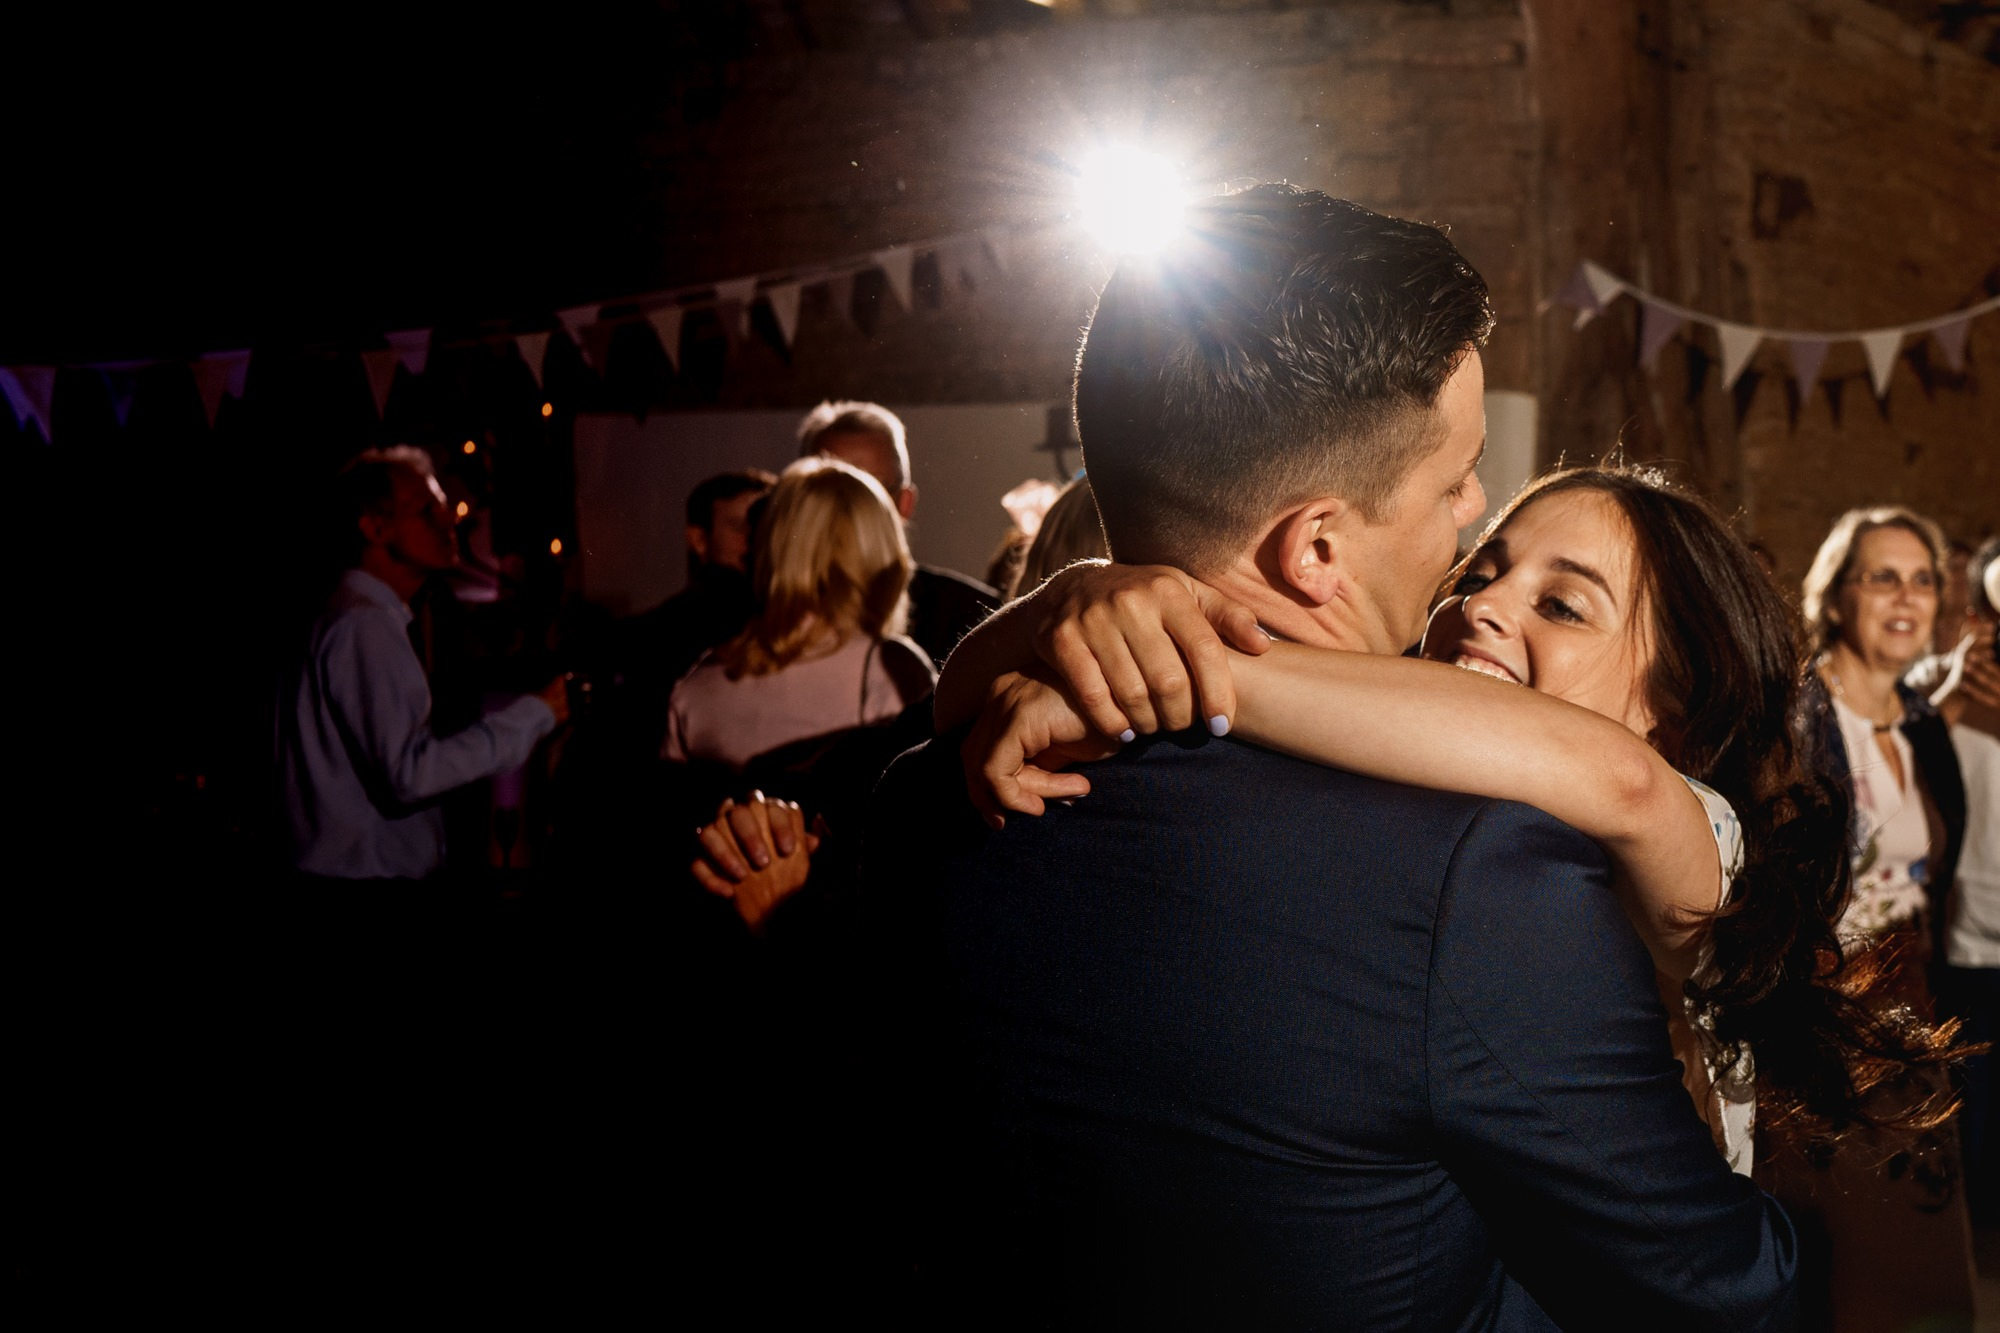 couples enjoying a dance at a wedding